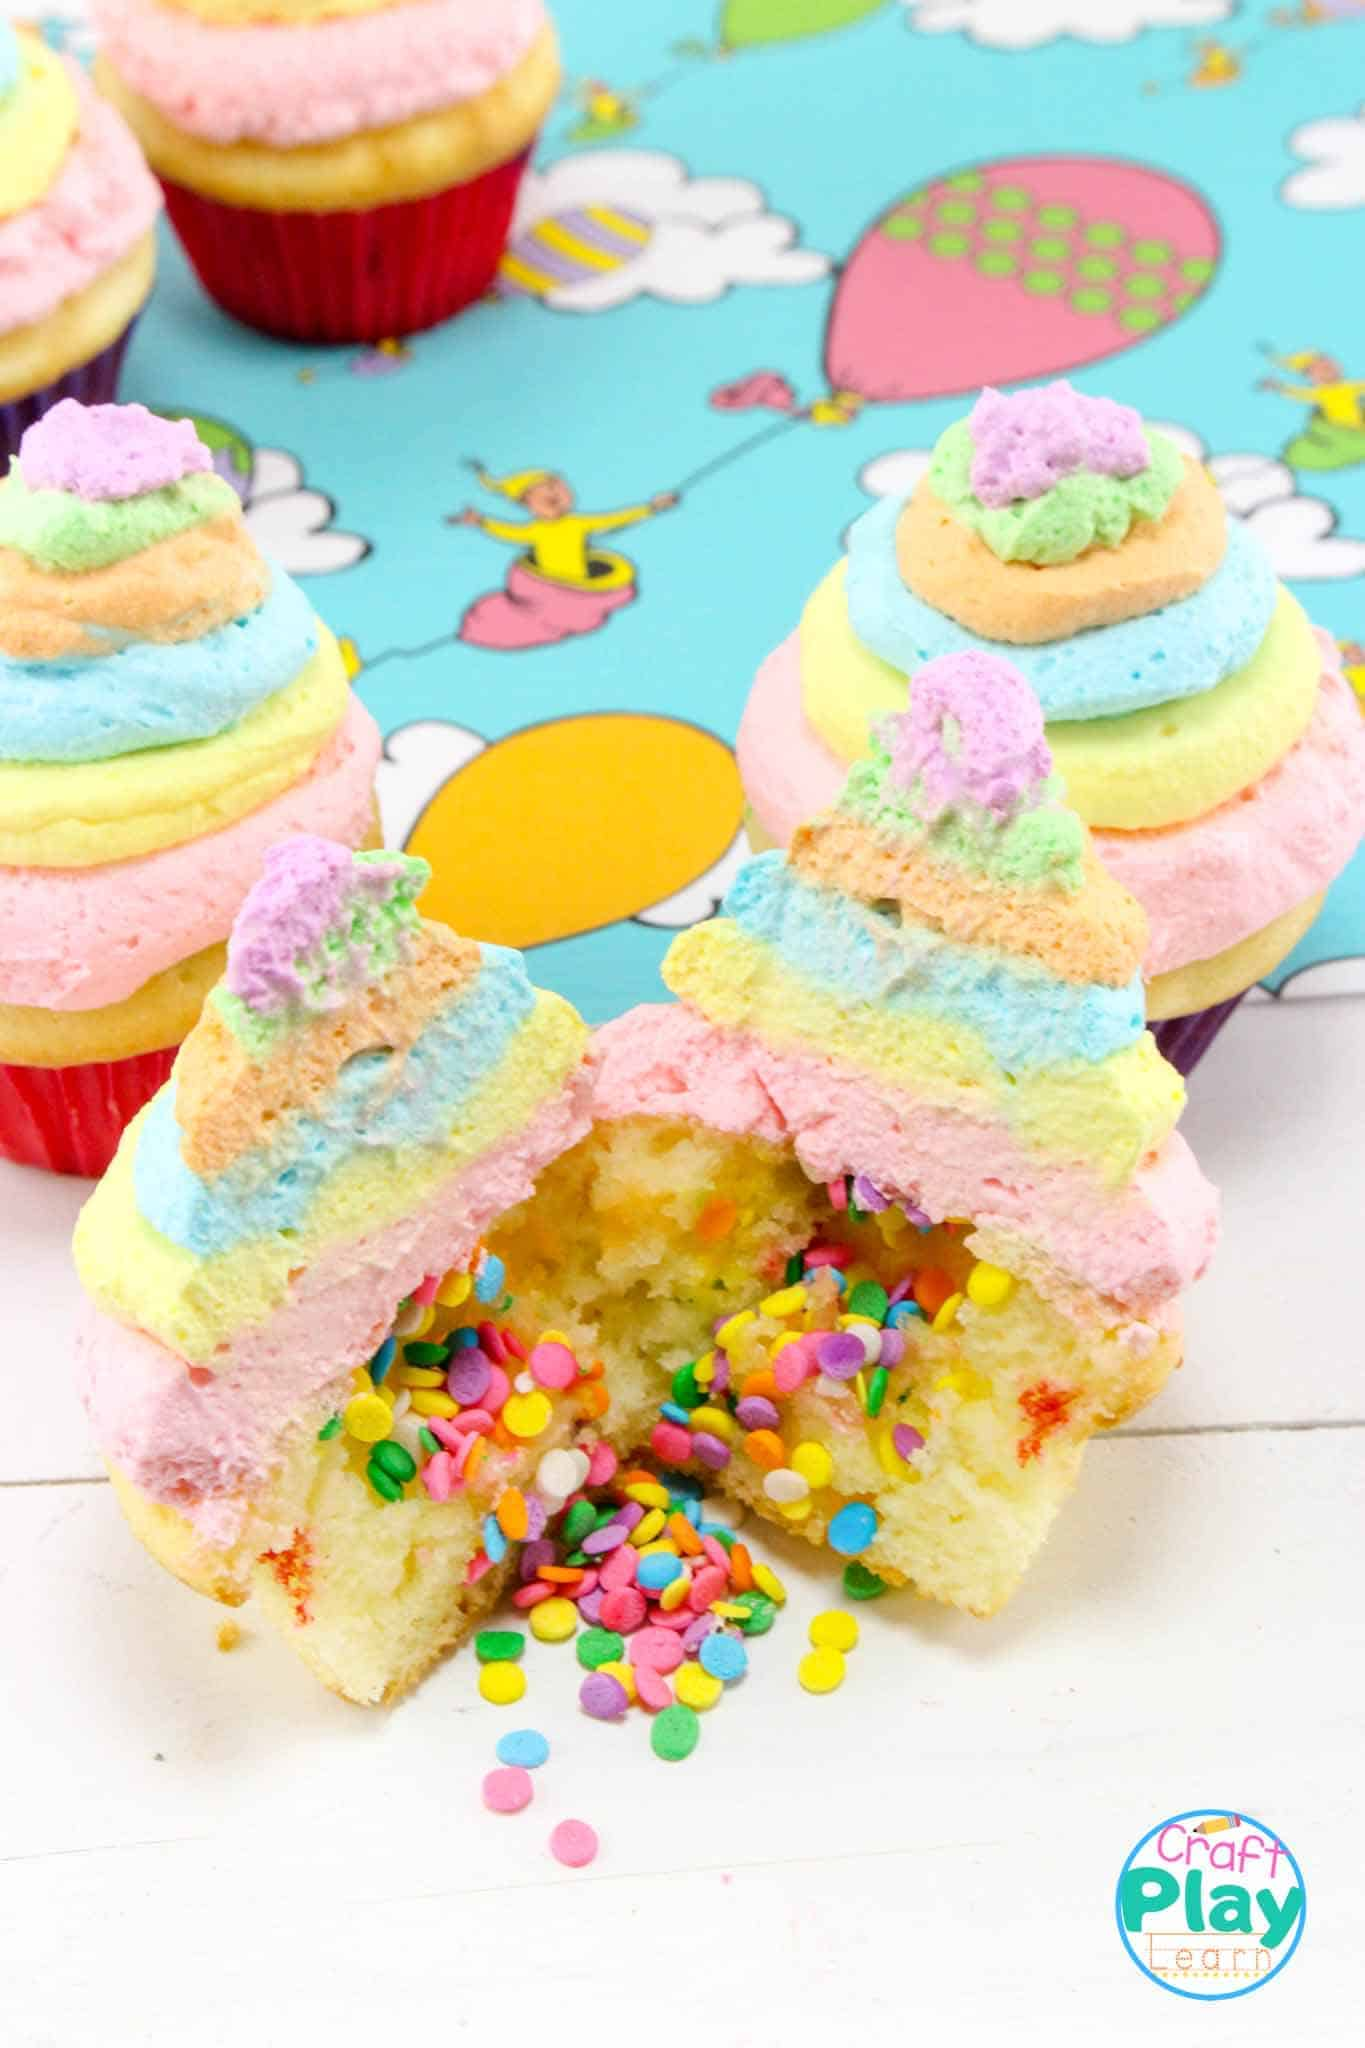 dr seuss party food idea oh the places you'll go cupcakes